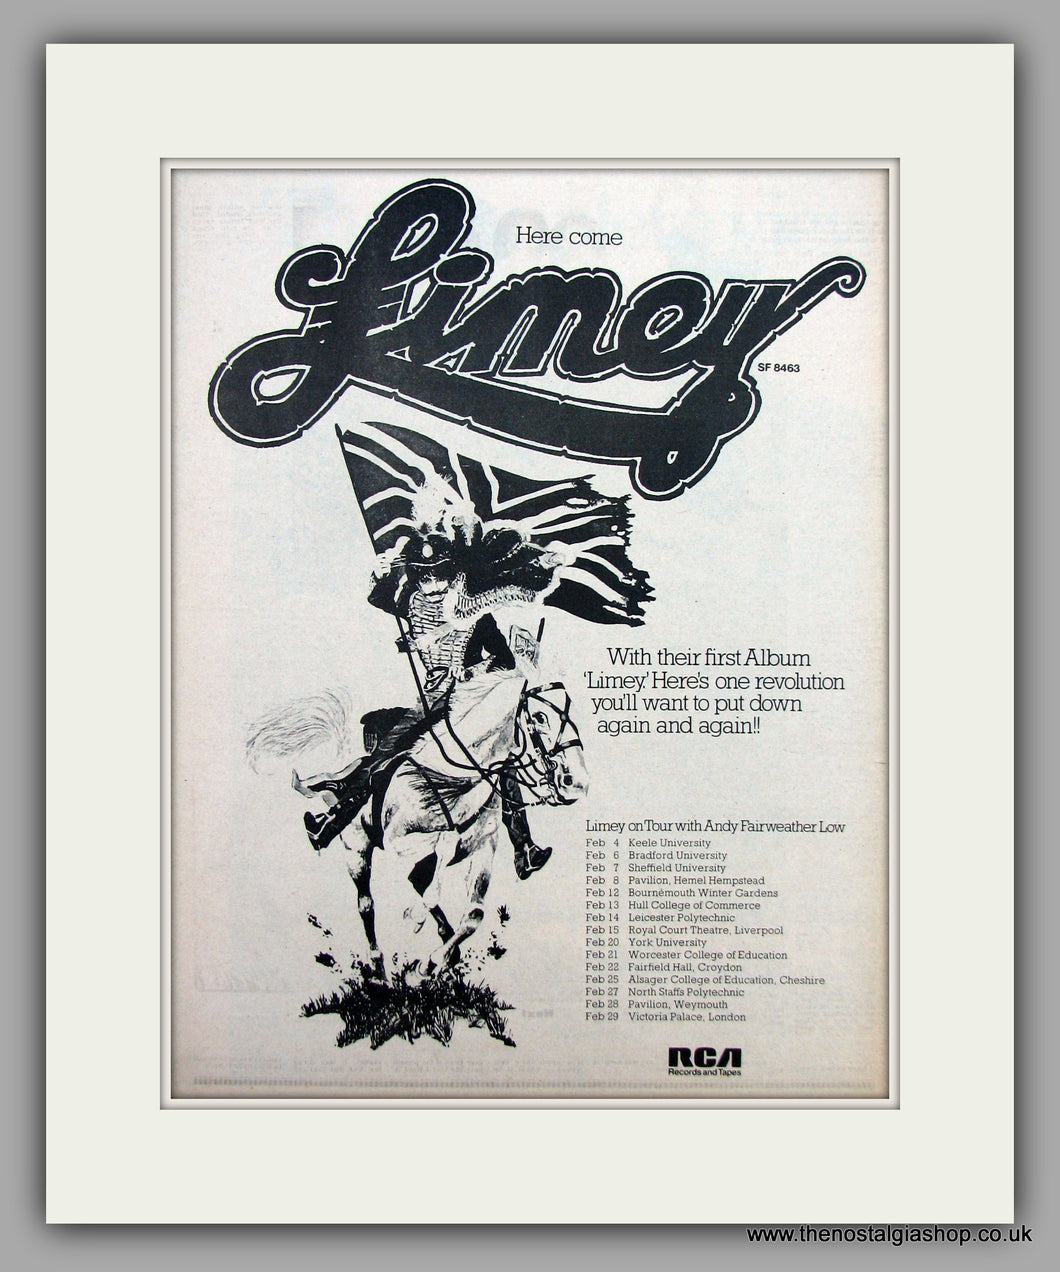 Limey On Tour With Andy Fairweather Low.  Original Vintage Advert 1976 (ref AD10491)